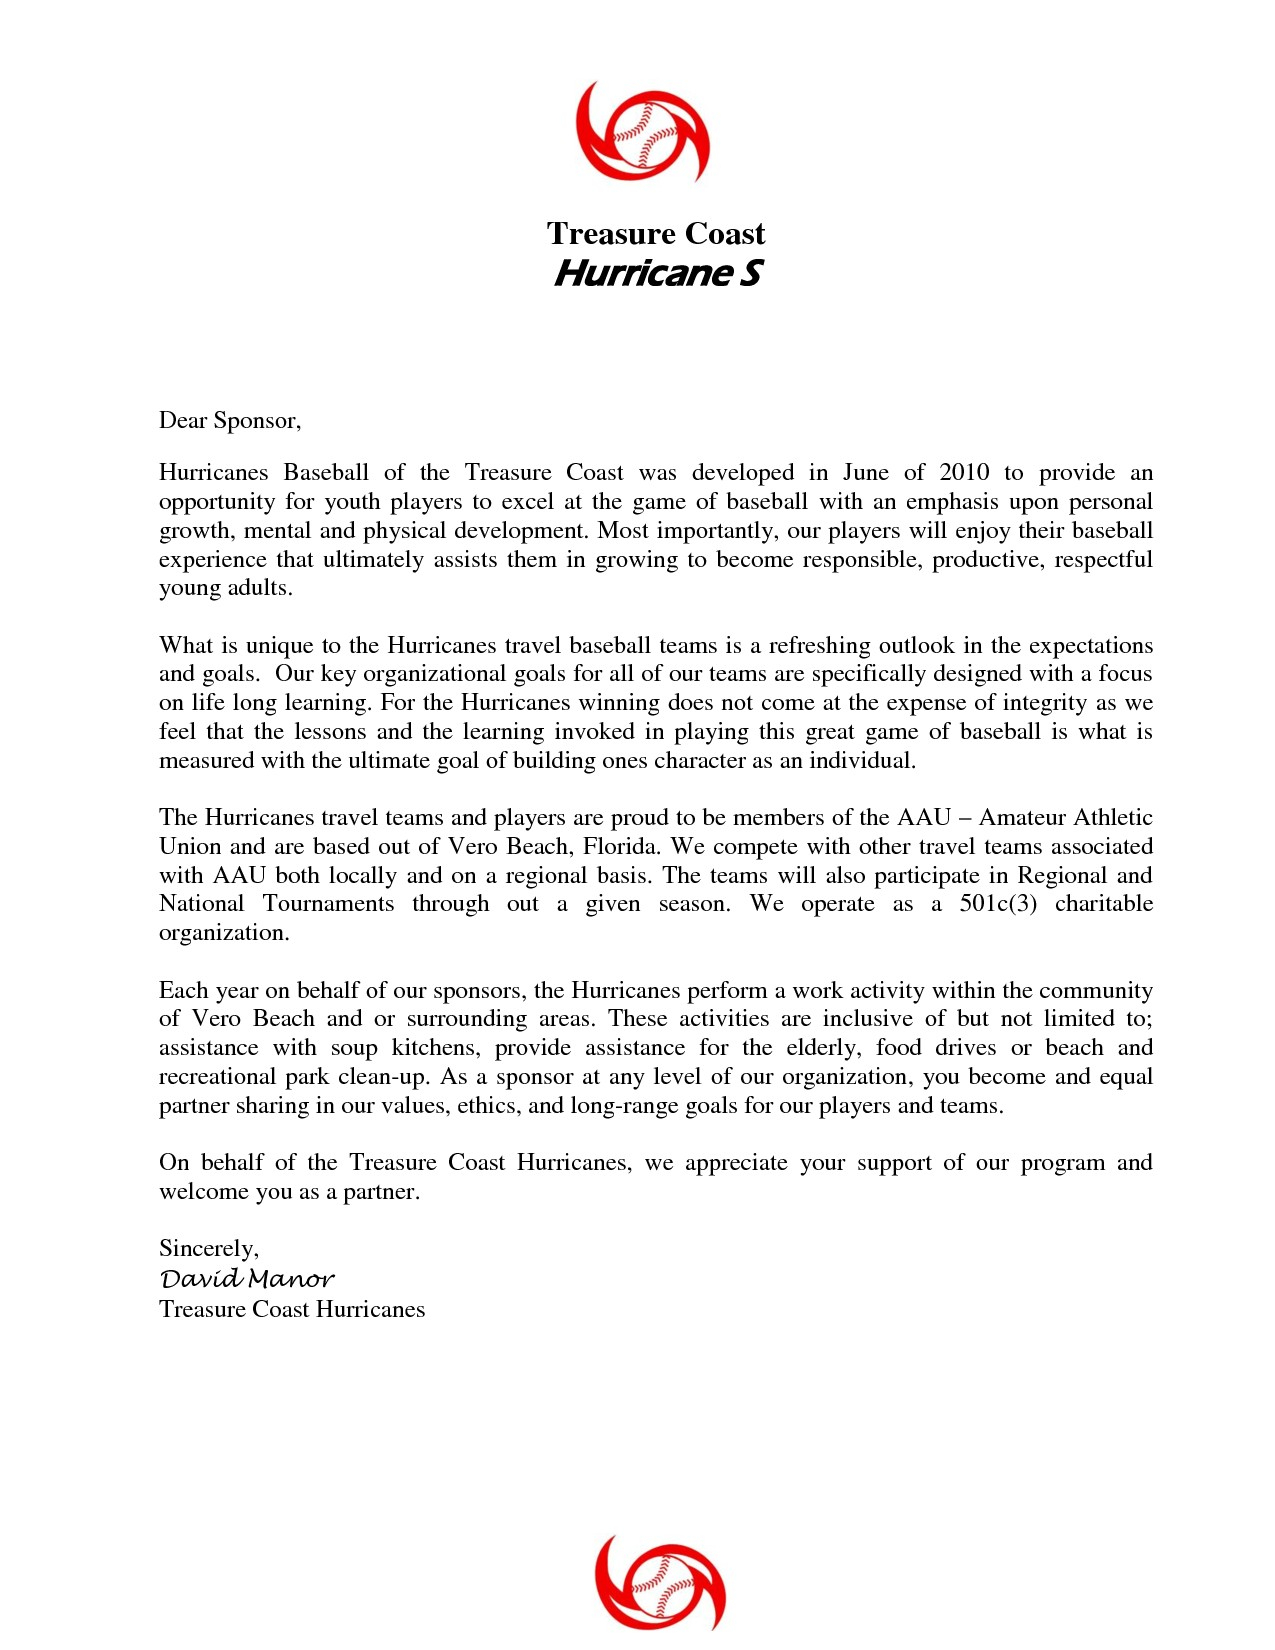 Baseball Sponsorship Letter Template - Sponsorship Letter for Sports Refrence Youth Sponsorship Letter